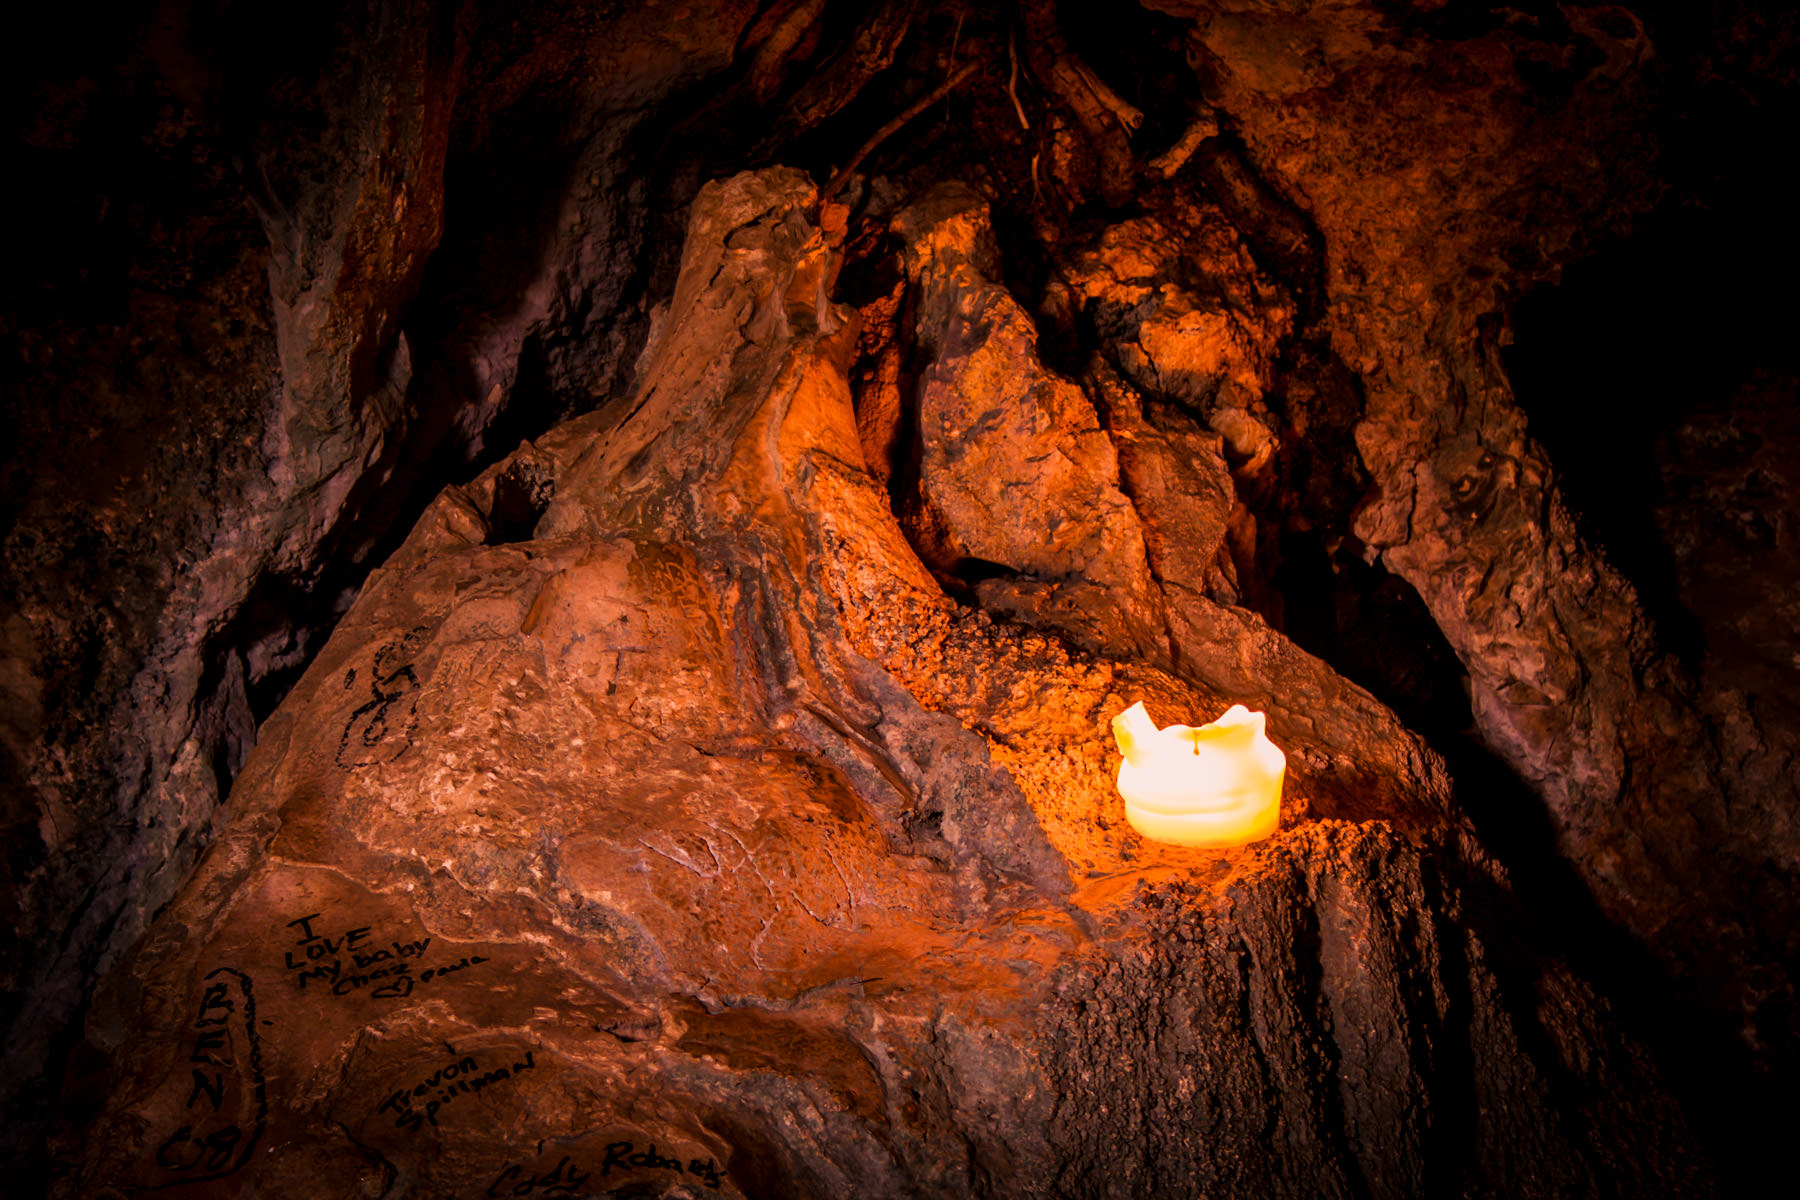 A candle highlights graffiti in a small cave at Turner Falls Park, Oklahoma.